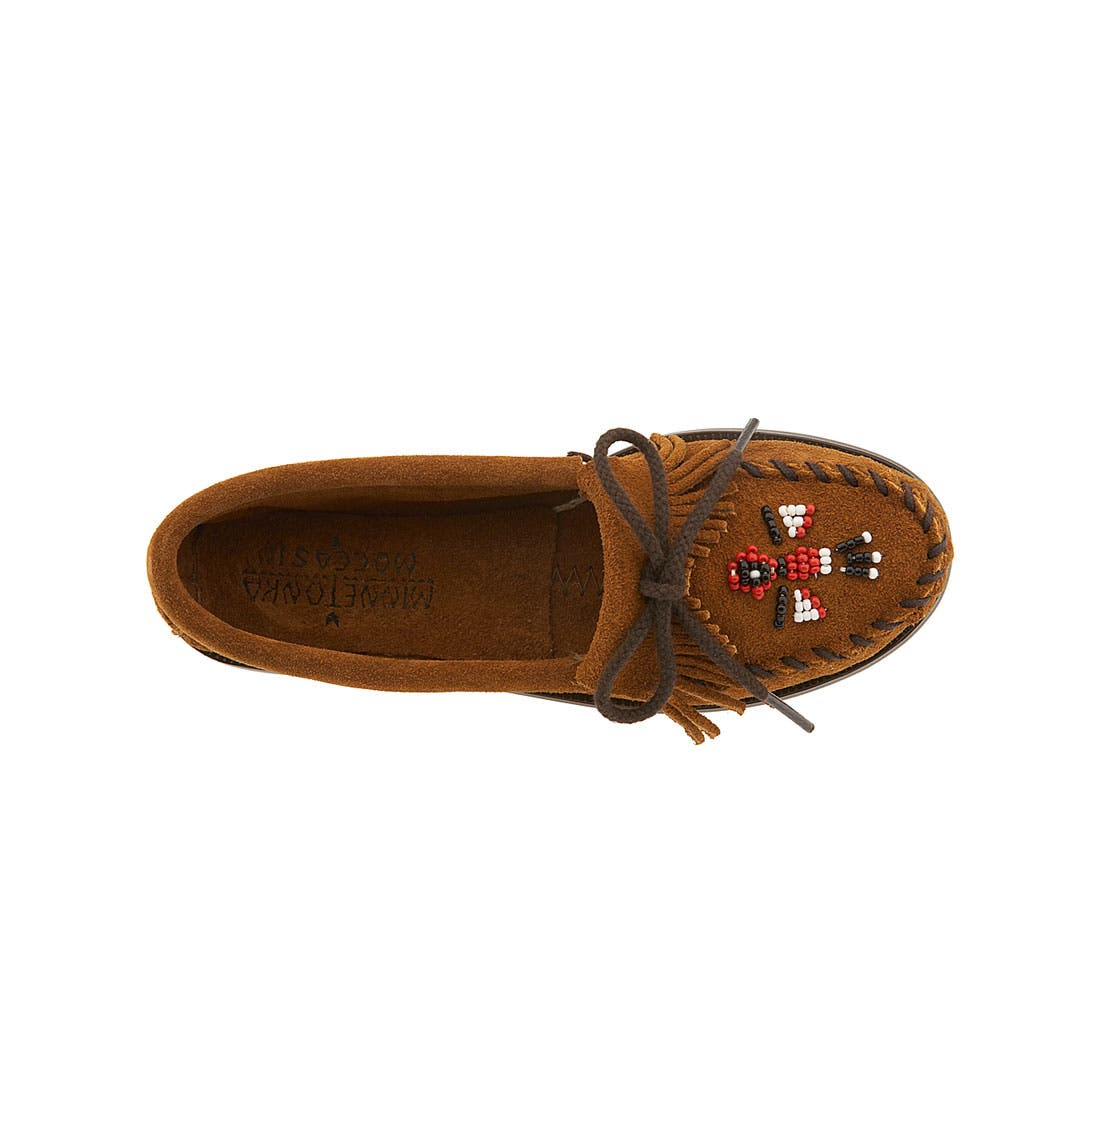 Alternate Image 3  - Minnetonka 'Thunderbird' Moccasin (Toddler, Little Kid & Big Kid)